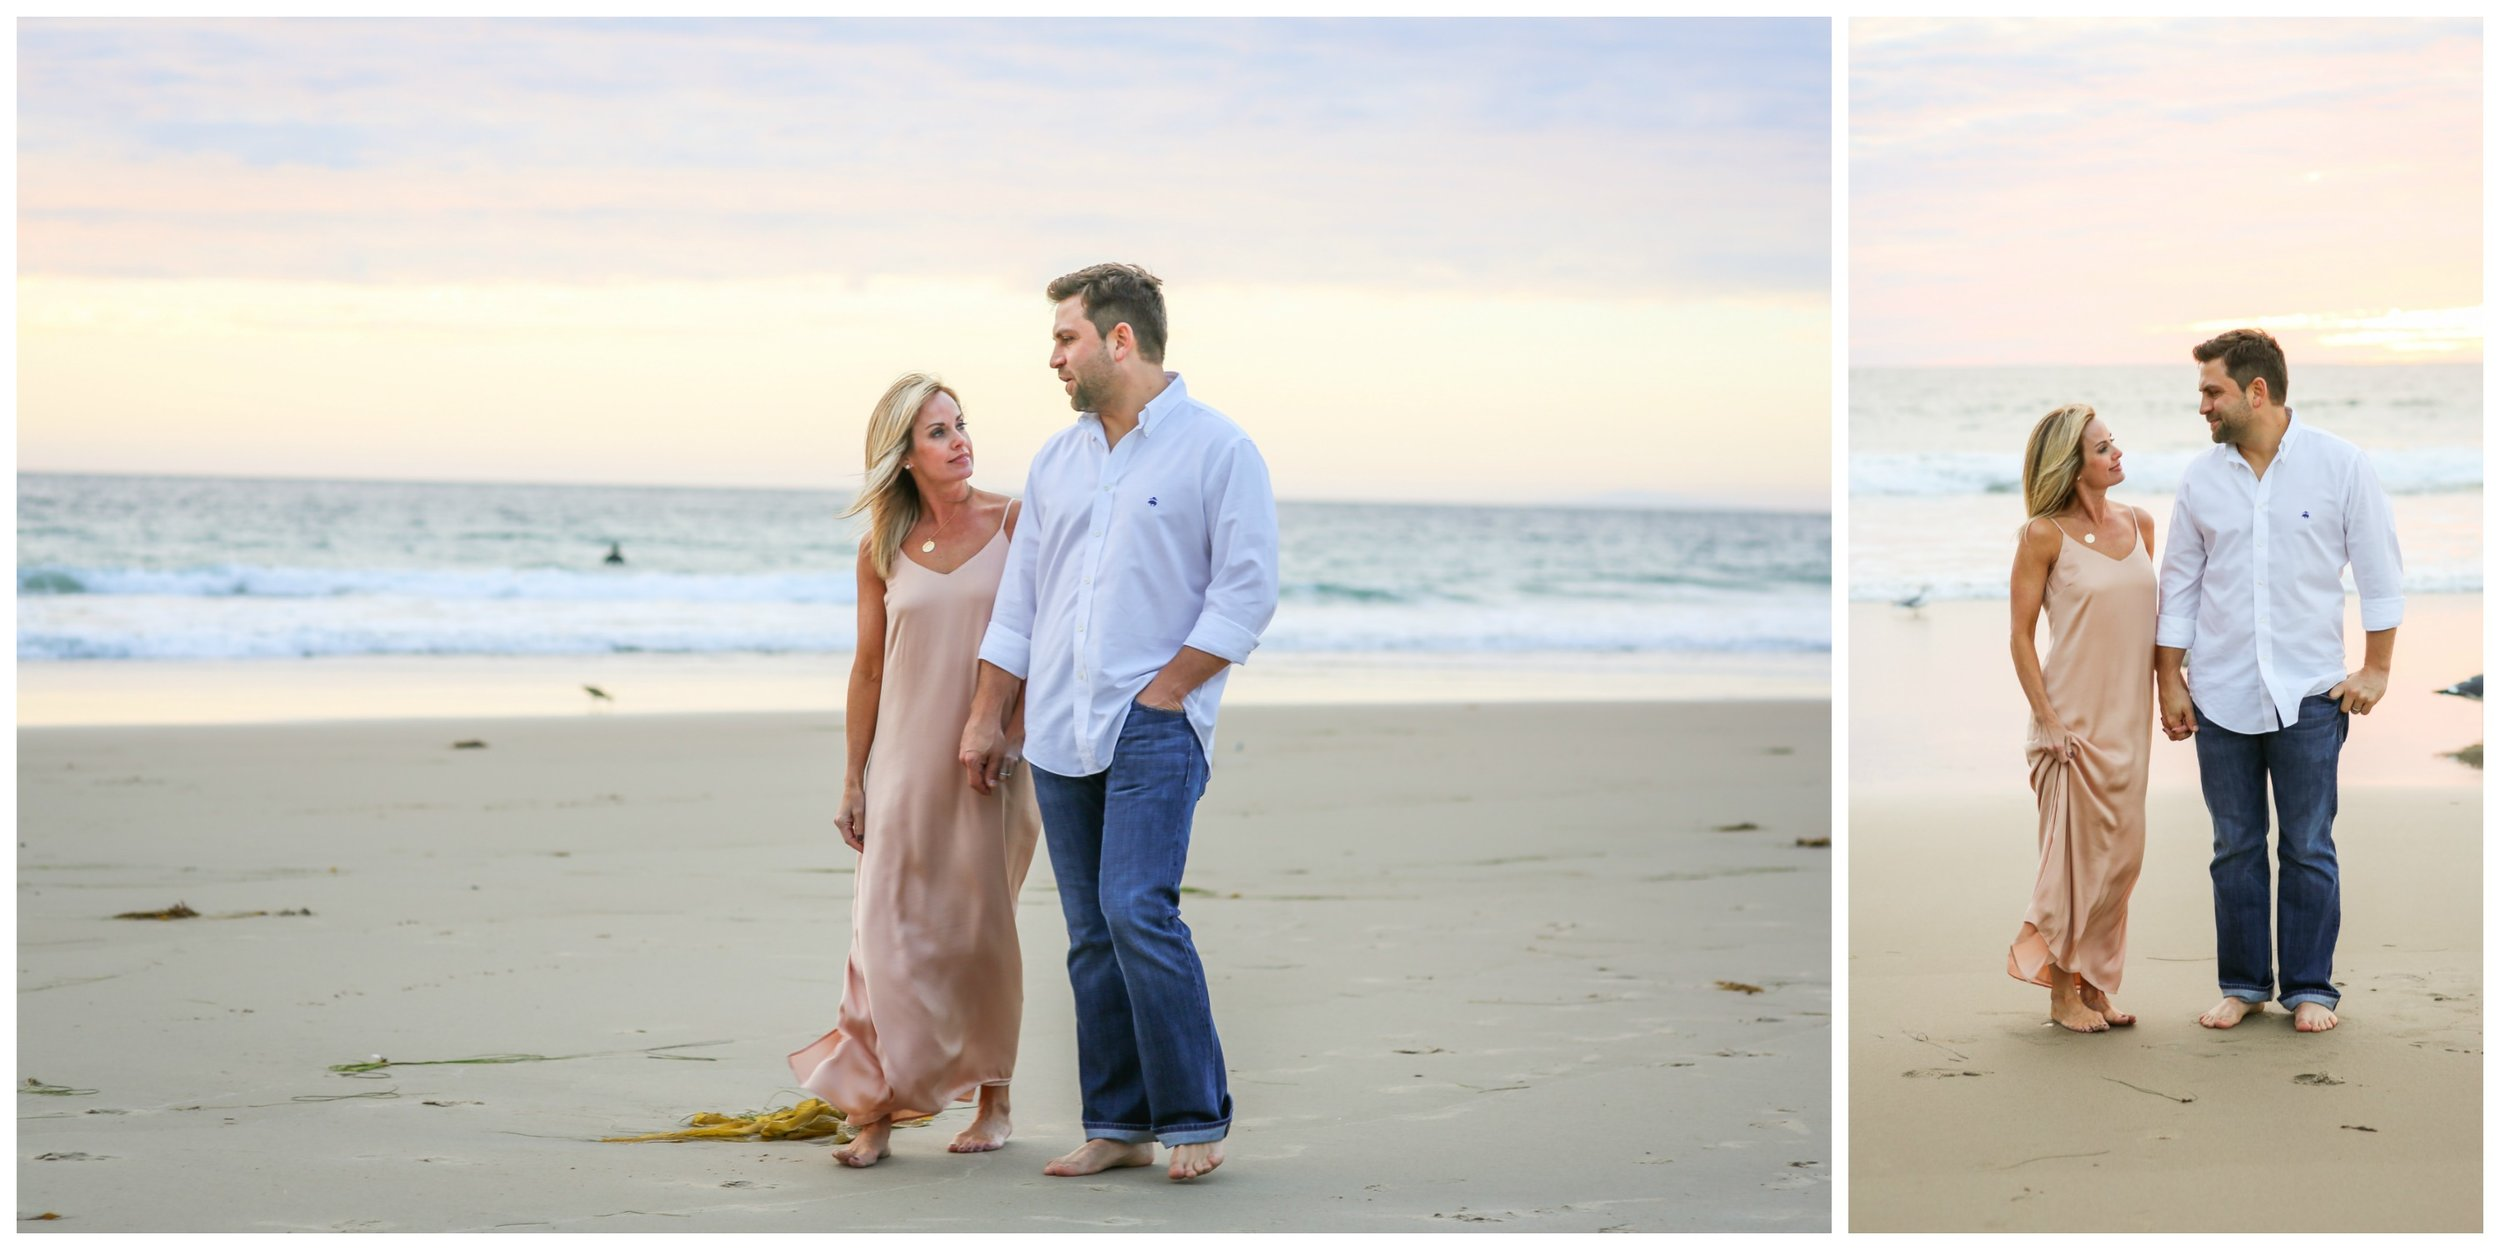 Pacific Dream Photography - California Photographer - Portrait Photographer - Family Photographer - Formal Portraits - Anniversary Photography - Laguna Niguel Photographer